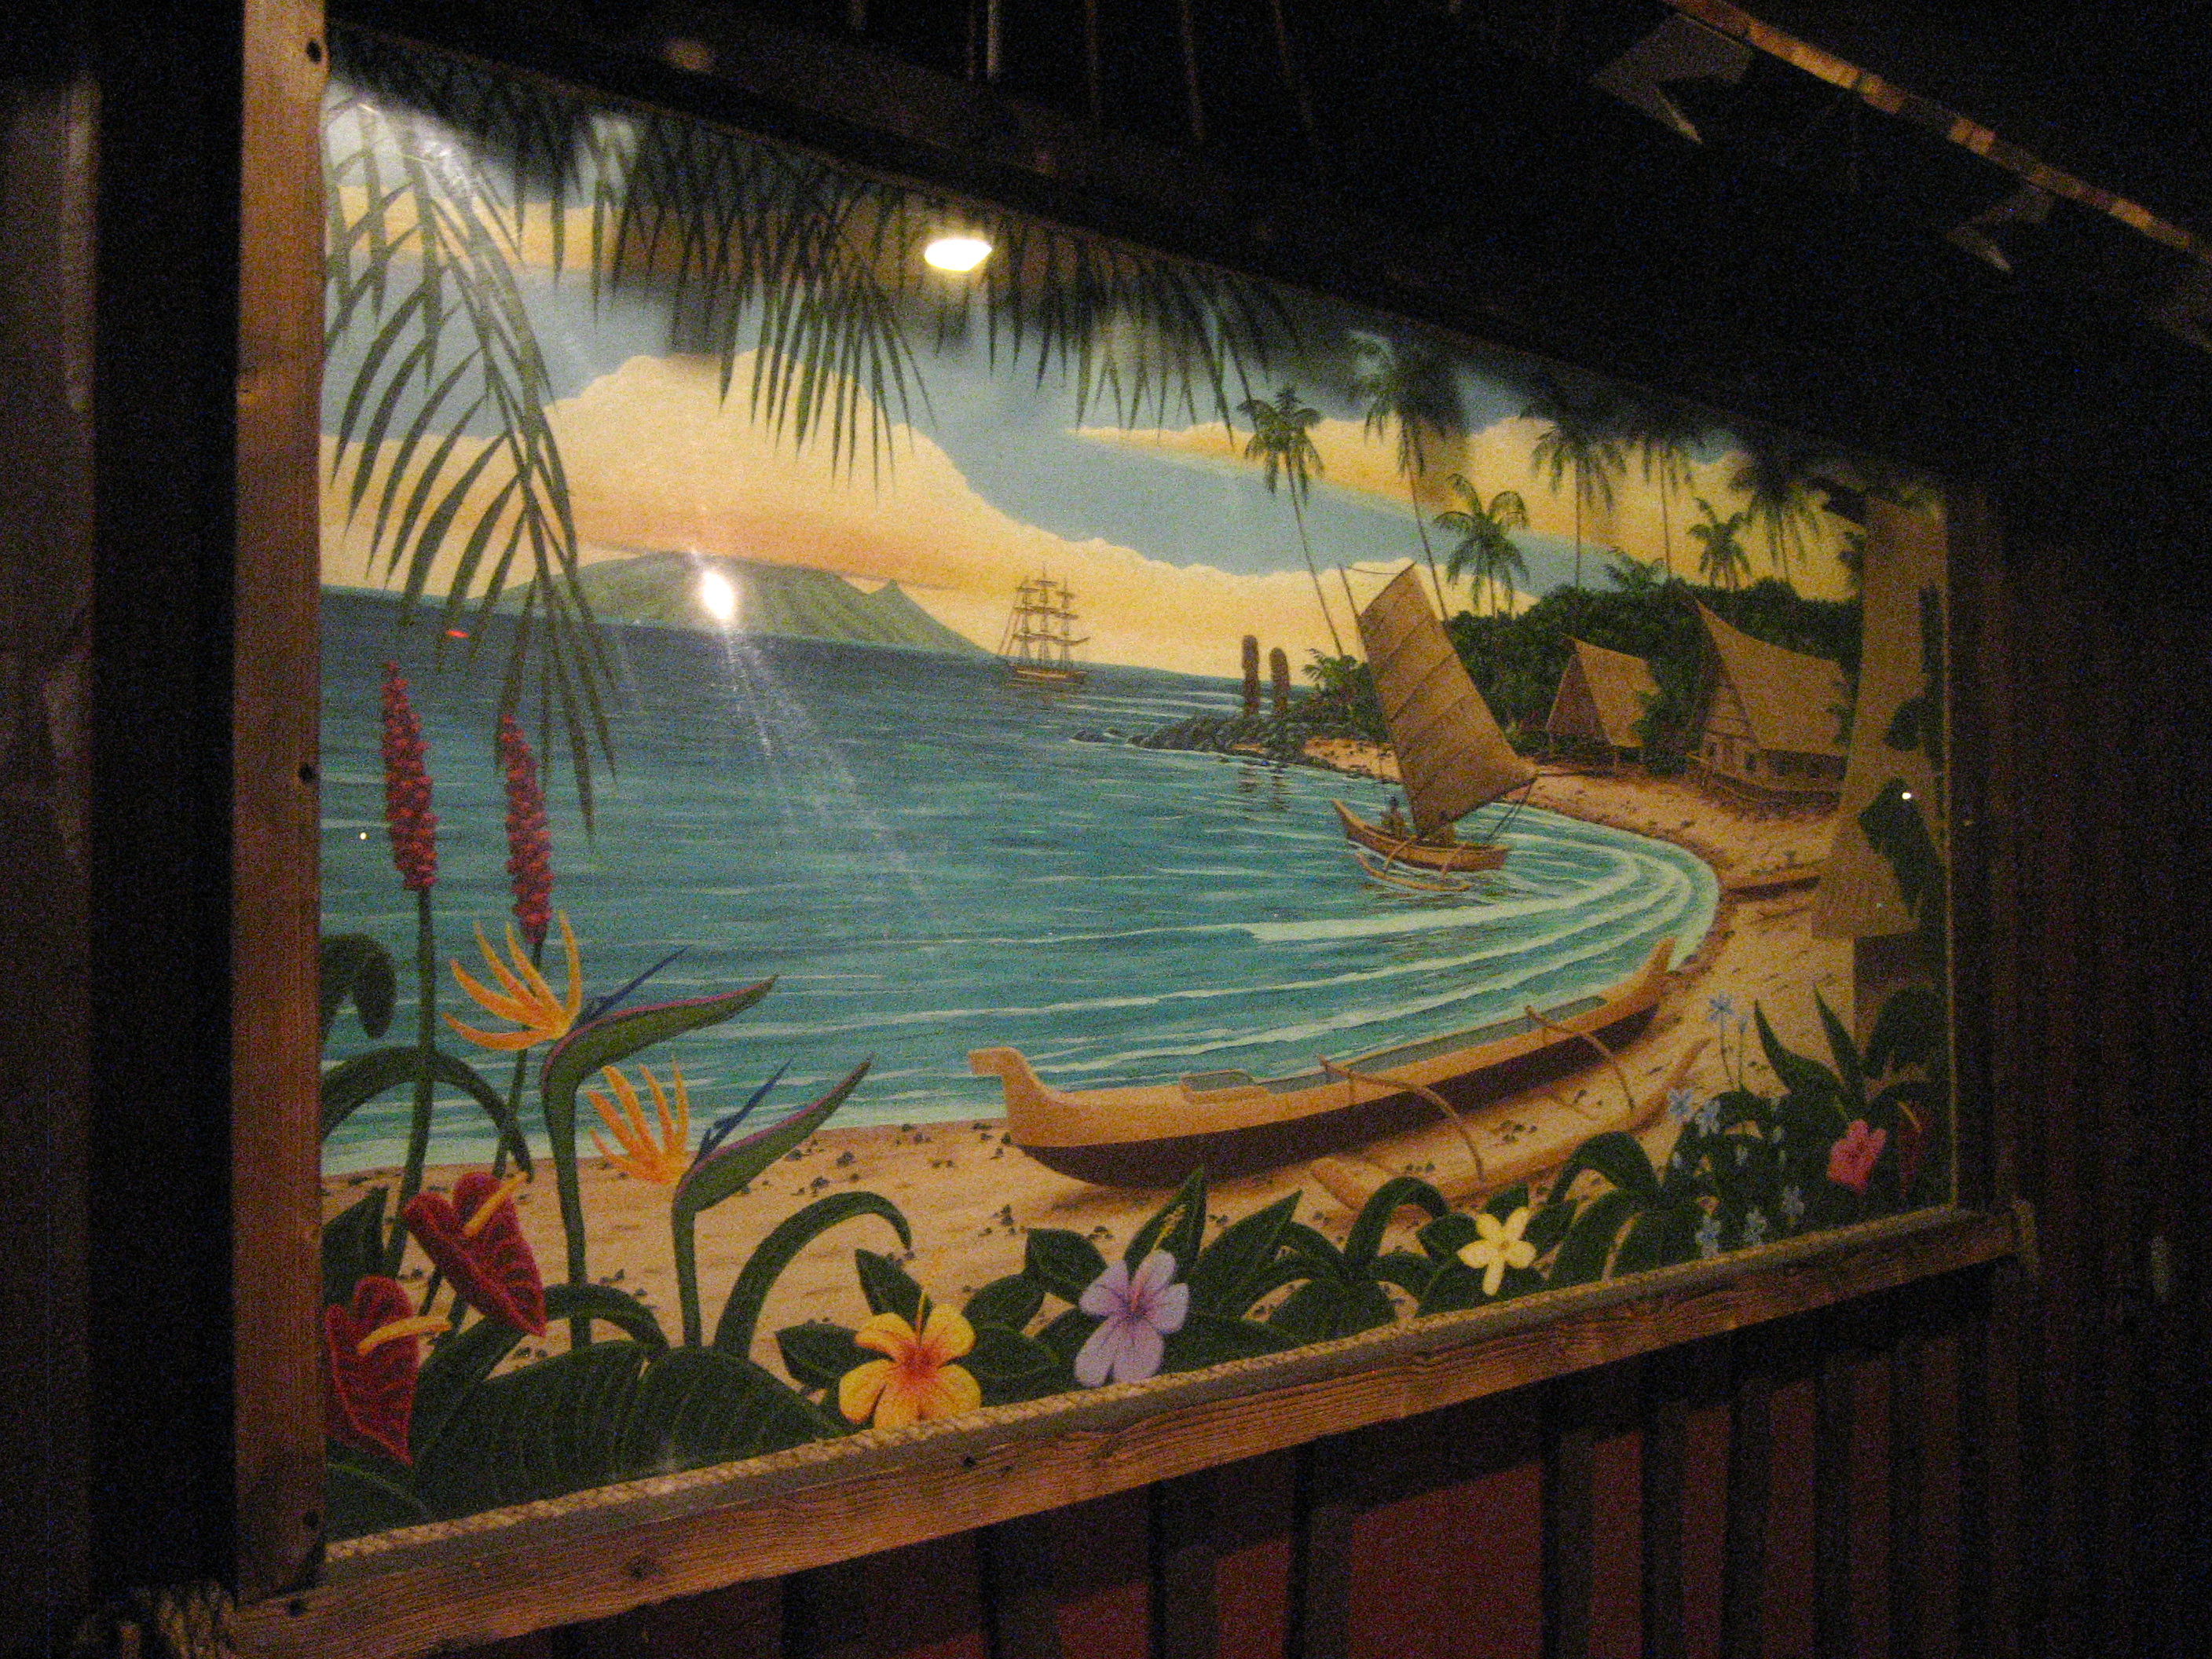 november 2010 the tiki chick there are four screens one in each corner and a snack bar projector building in the middle that s decorated with island themed murals tiki pillars